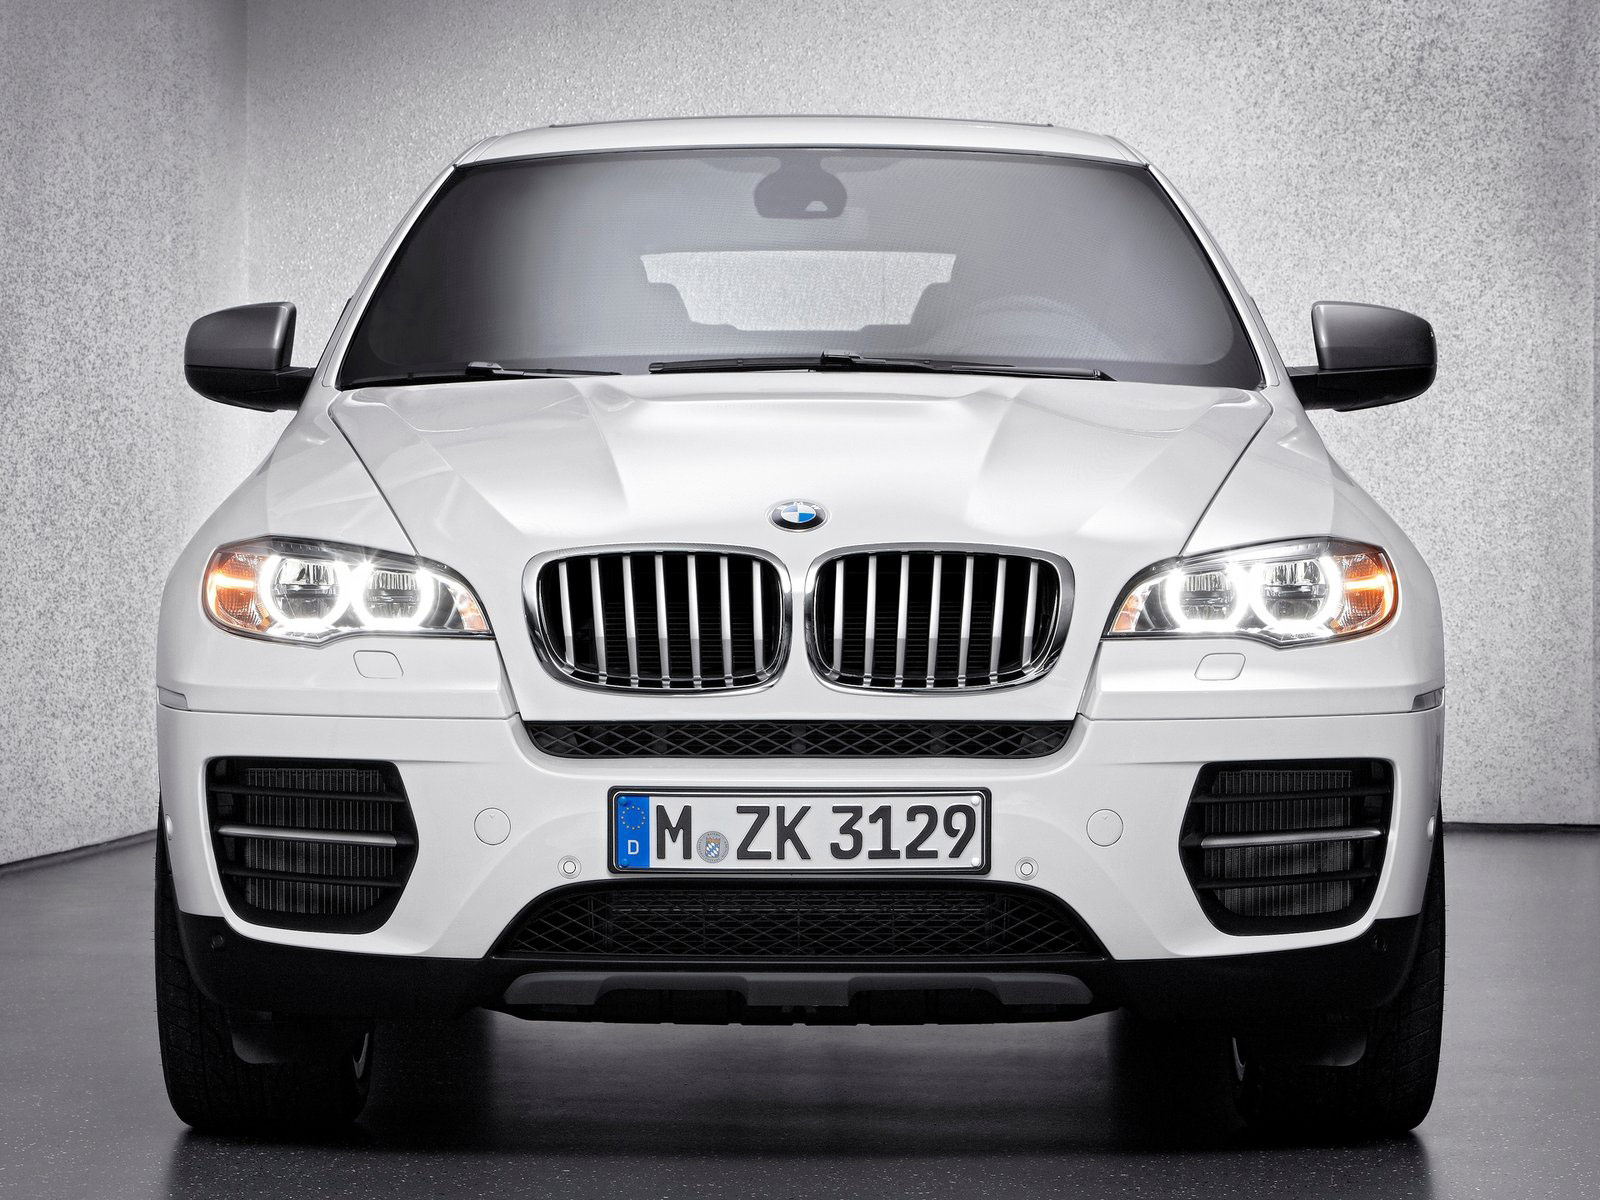 gambar mobil 2013 bmw x6 m50d pictures and review. Black Bedroom Furniture Sets. Home Design Ideas